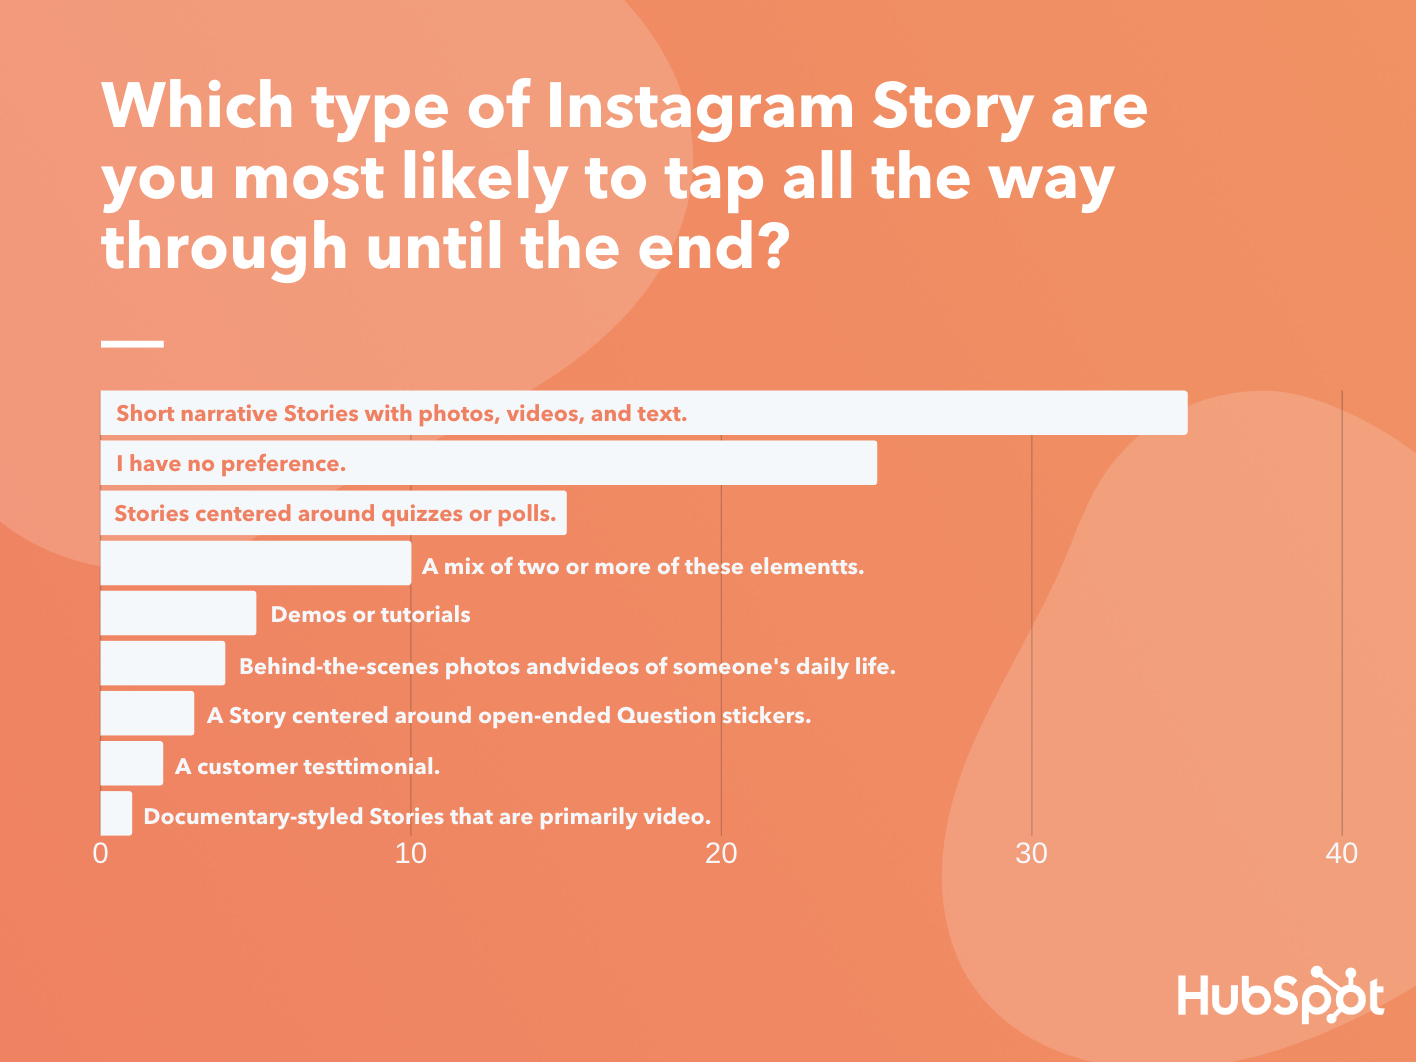 Which types of Instagram Stories do you tap all the way through?